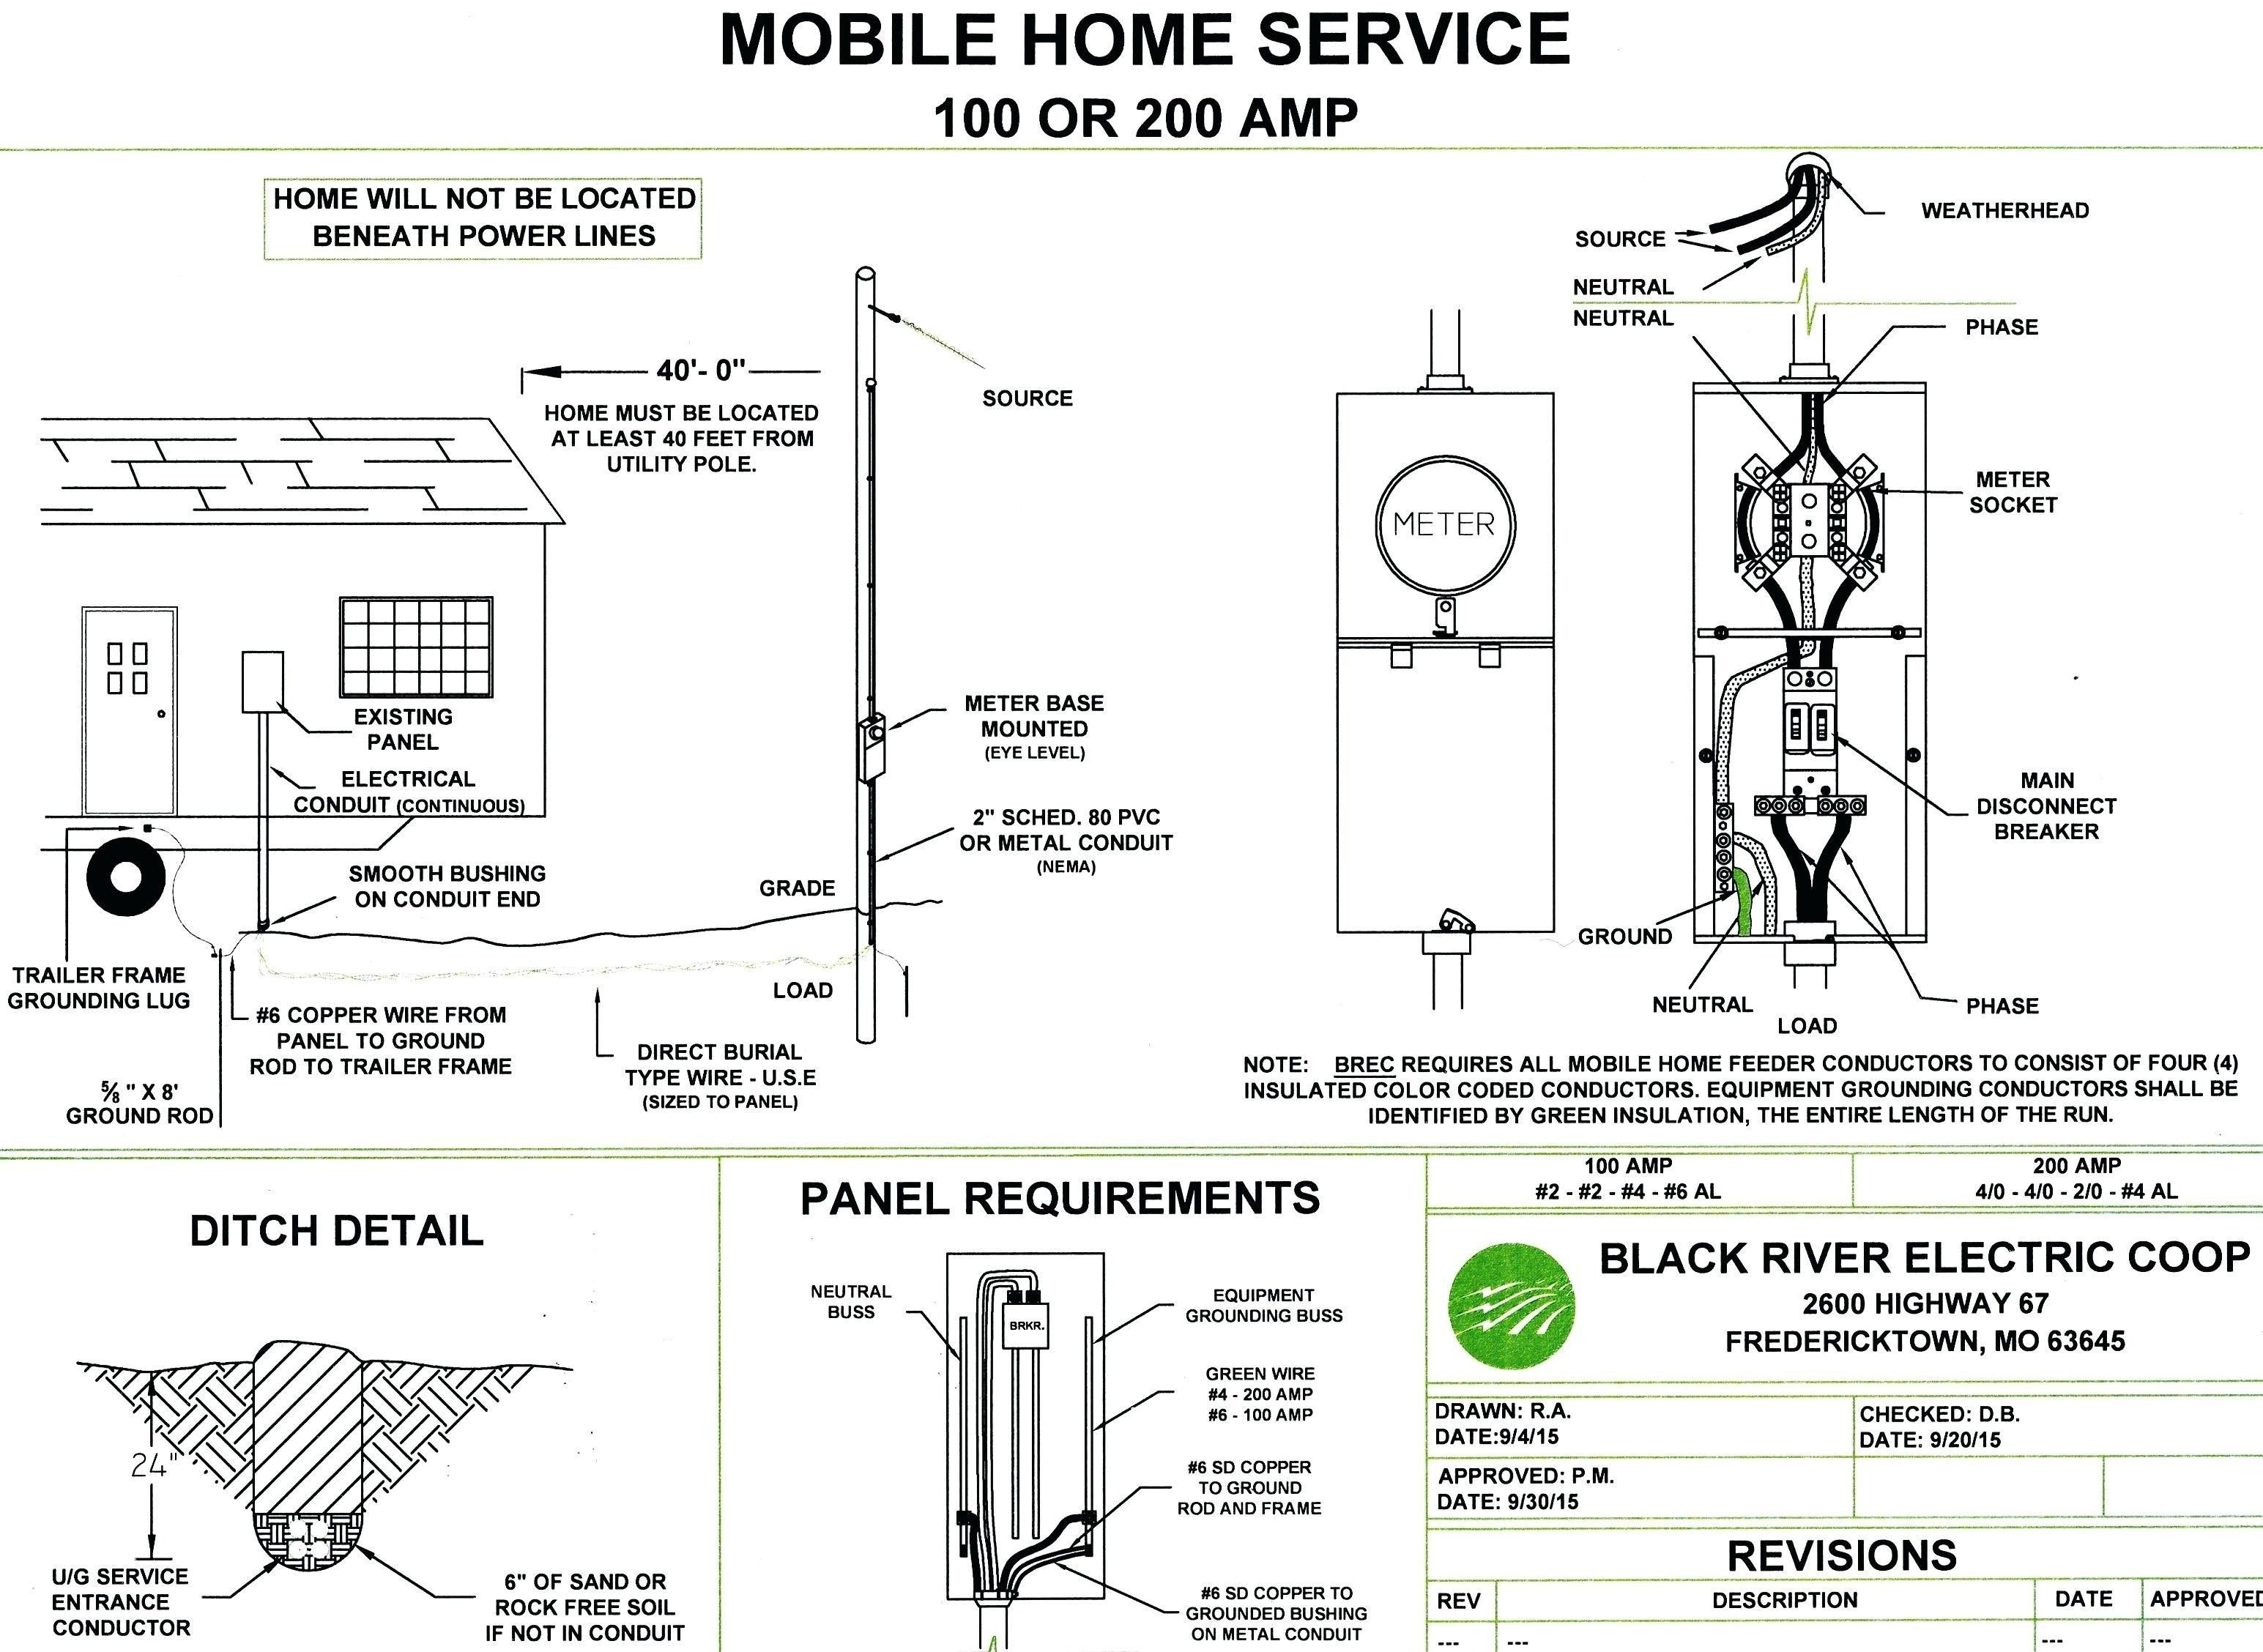 New Wiring Diagram Mobile Home Diagram Diagramsample Diagramtemplate Wiringdiagram Diagramchart Worksheet House Wiring Home Electrical Wiring Mobile Home